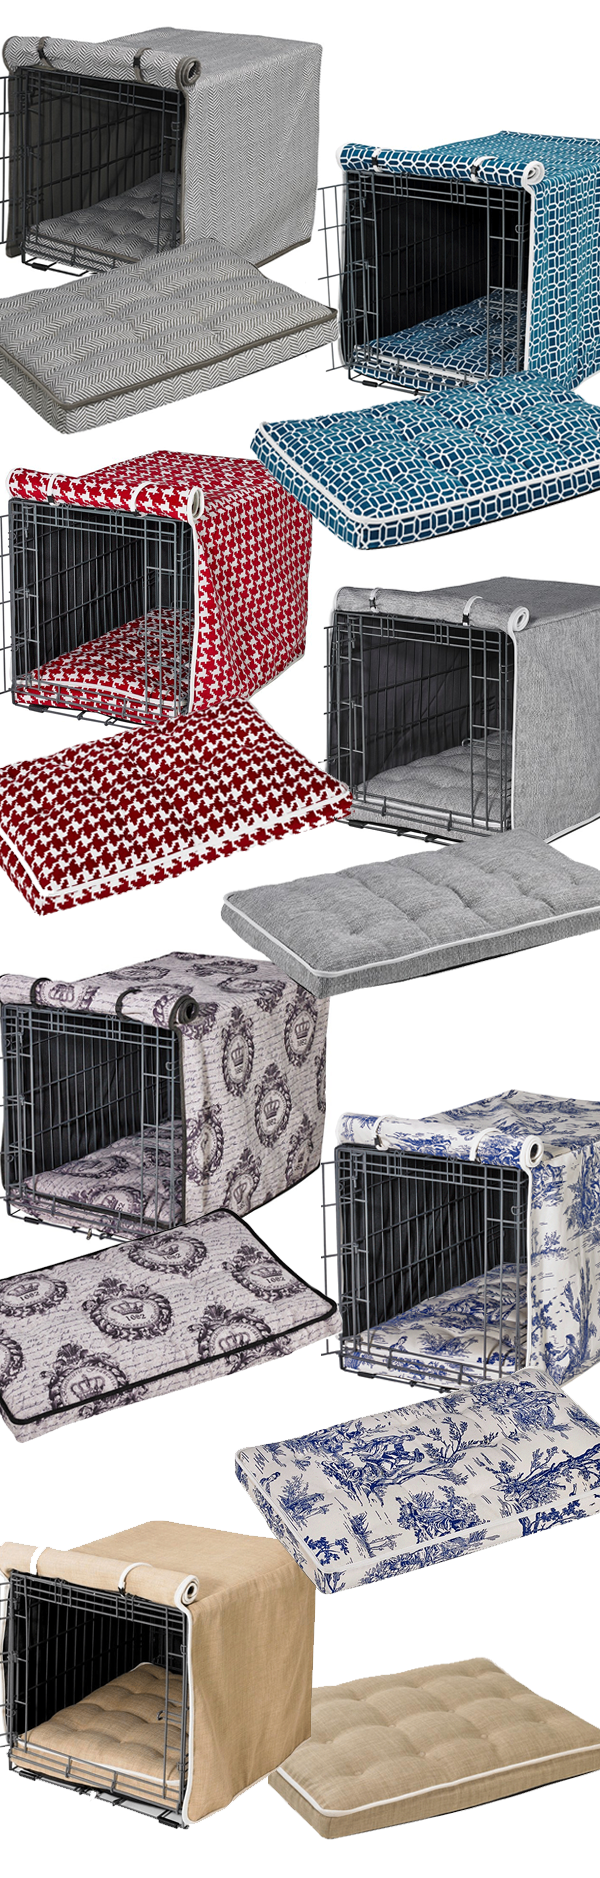 spruce up your dog's home with our selection of designer crate  - spruce up your dog's home with our selection of designer crate covers andcrate mattresses